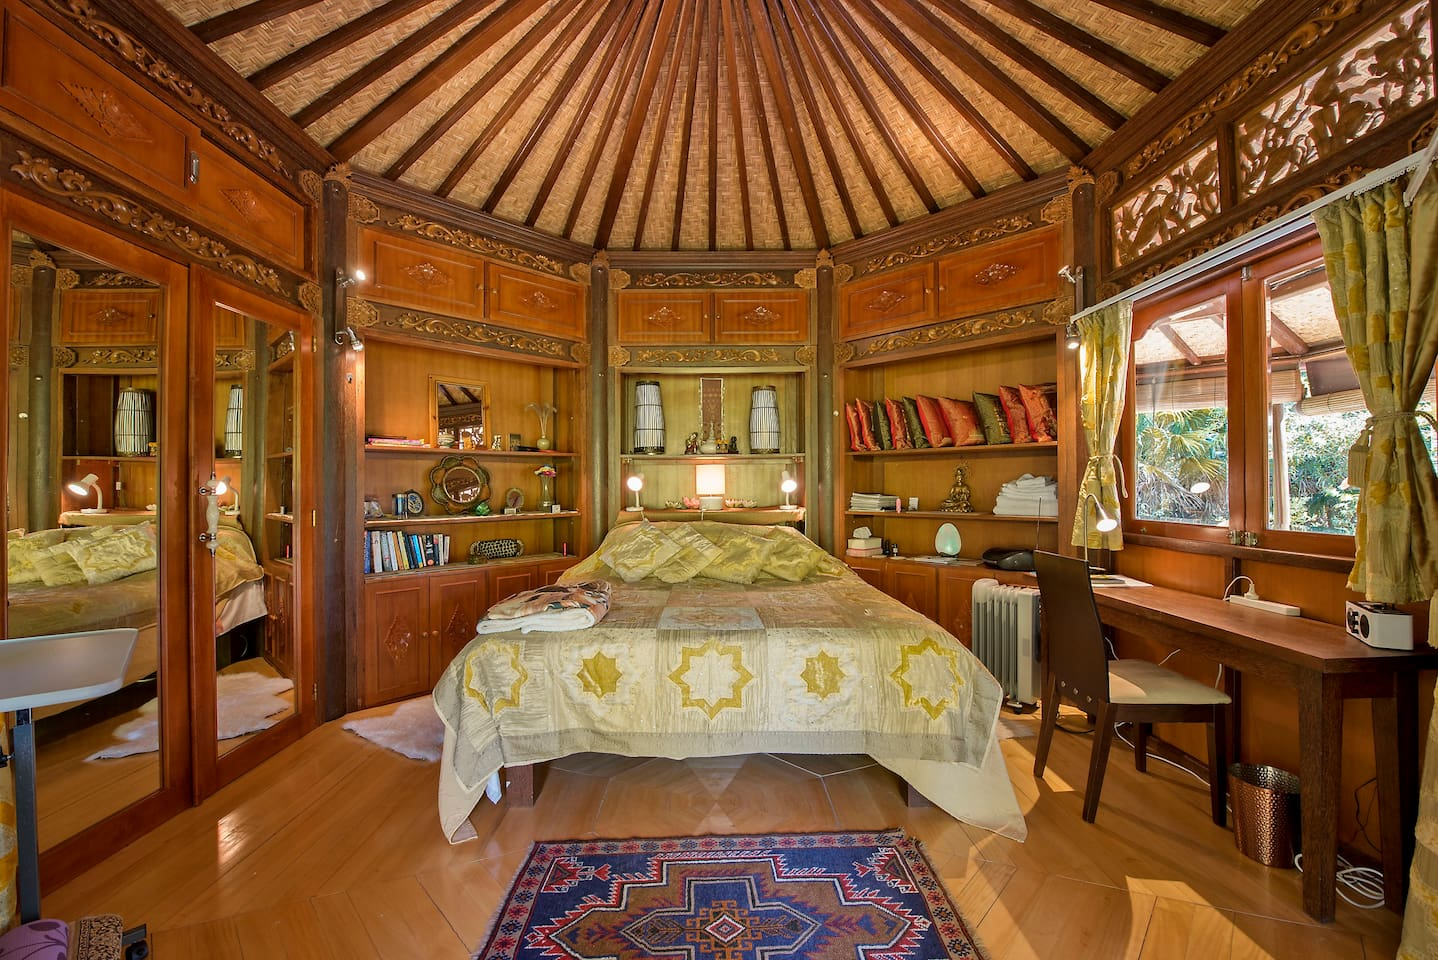 This is the bedroom made of carved wood and designed in Bali.